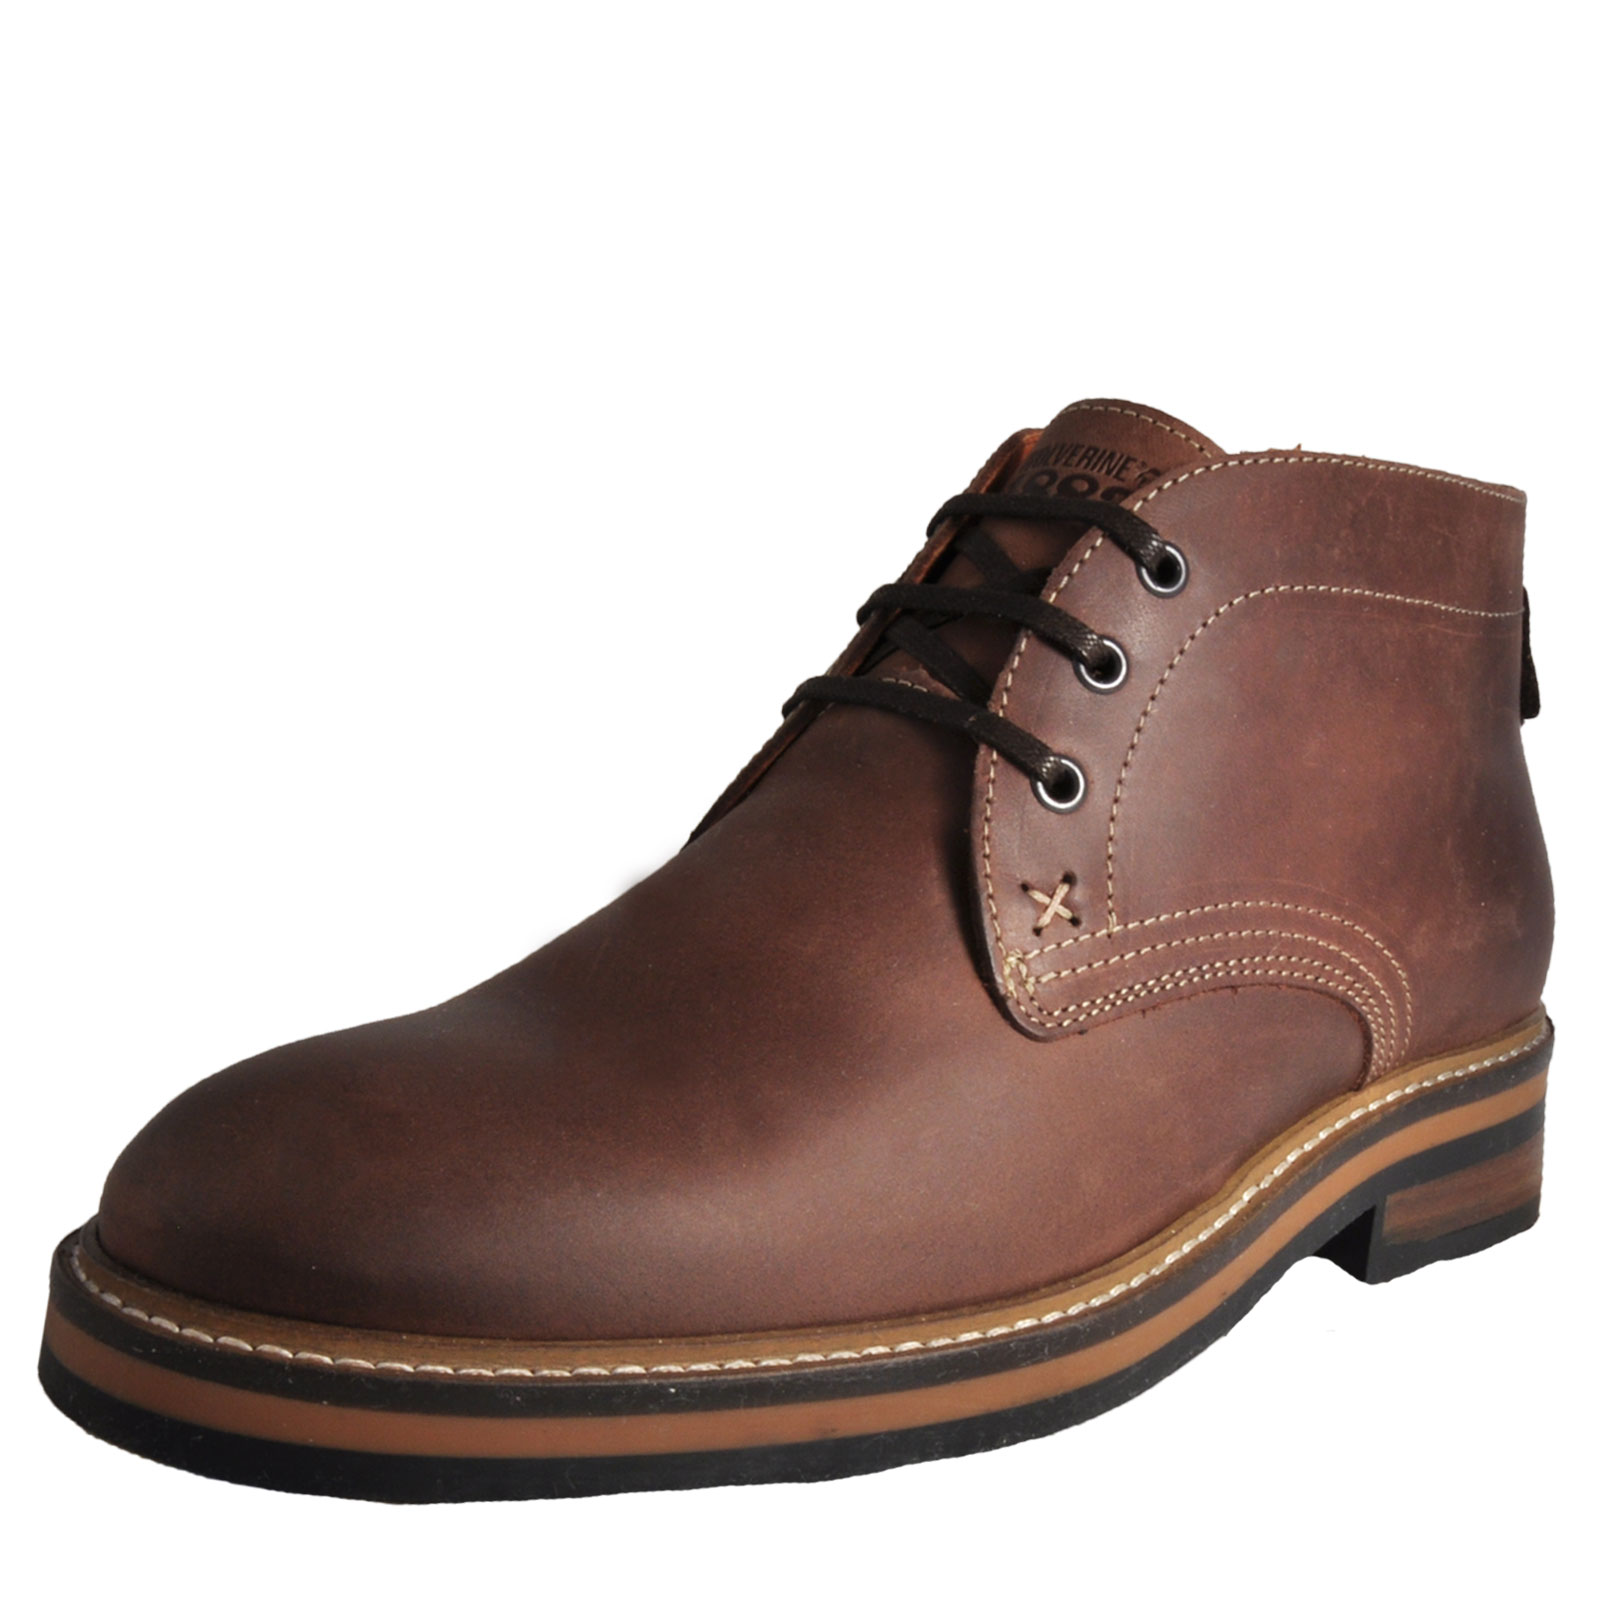 f34ae8a3316 Details about Wolverine 1883 Francisco Mens Leather Chukka Ankle Boots  Smart Dress Shoes Brown